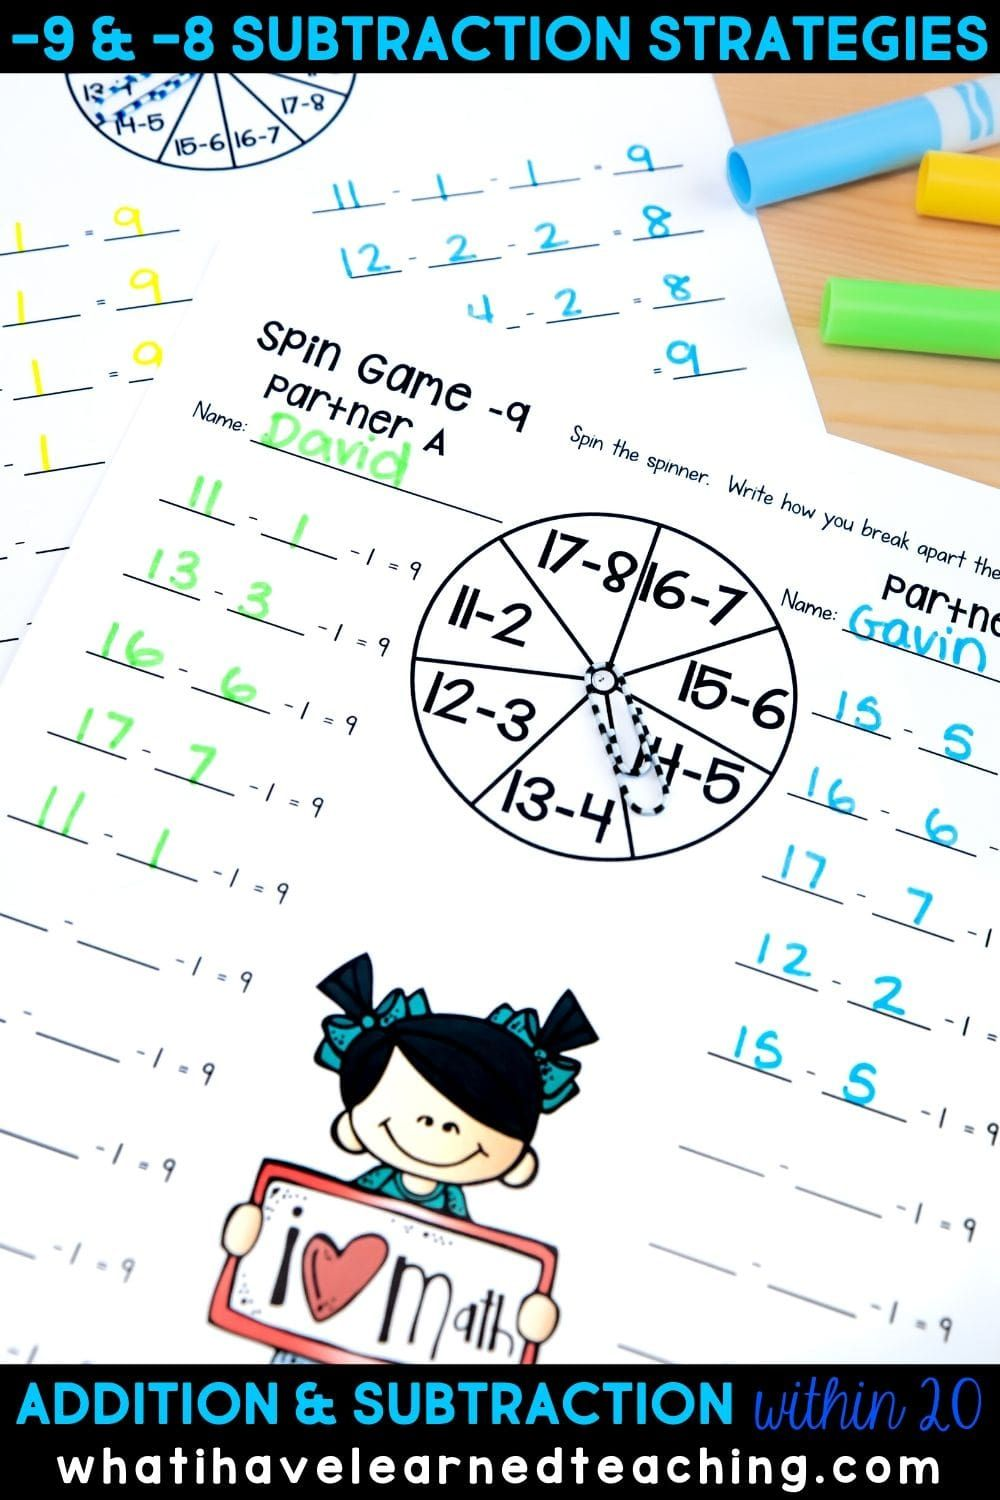 Addition And Subtraction Within 20 Make 10 Add 10 Use 10 To Add Use 10 To Subtract In 2021 Addition And Subtraction First Grade Worksheets Elementary Math Classroom [ 1500 x 1000 Pixel ]